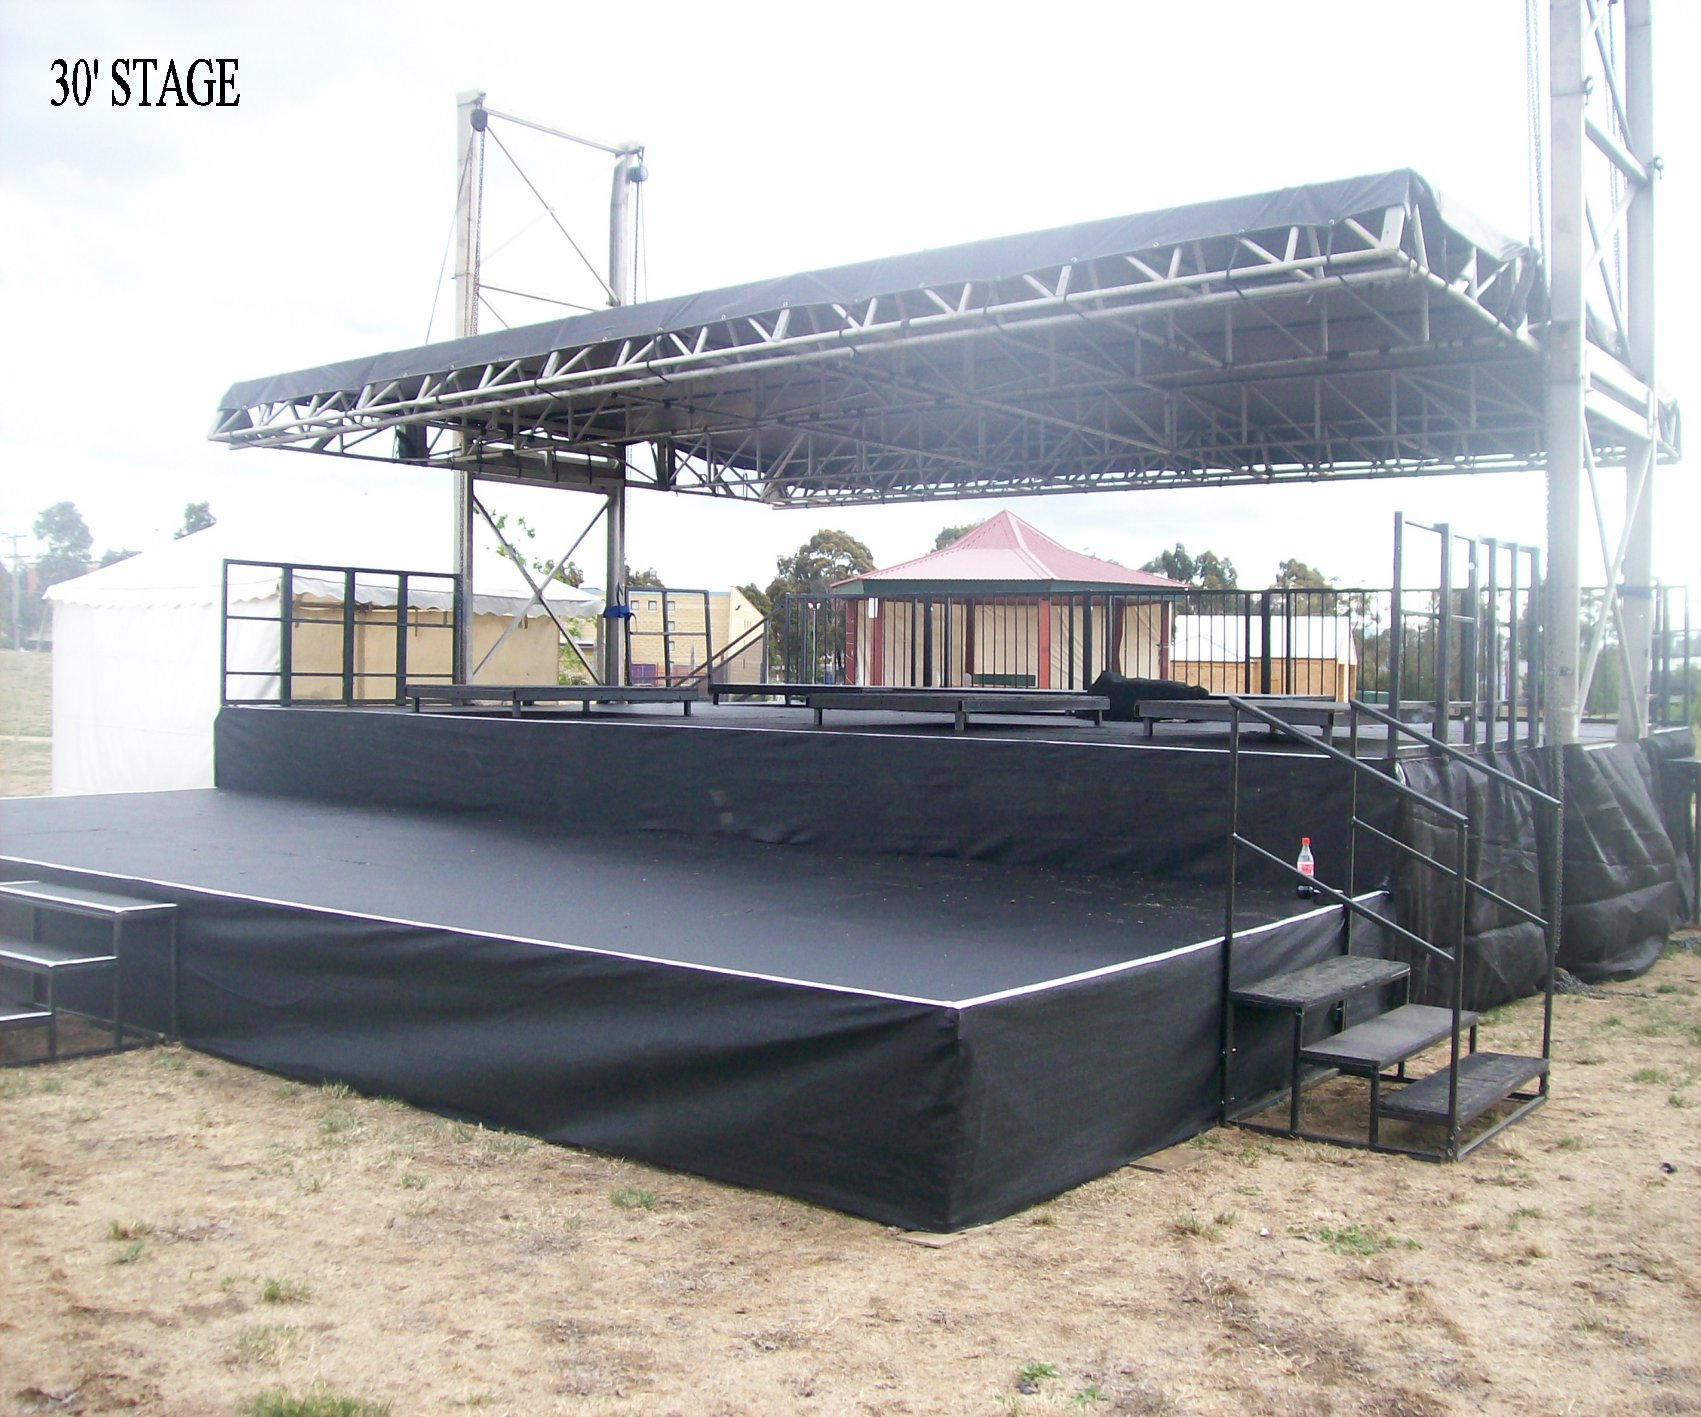 30-foot-STAGE-2008